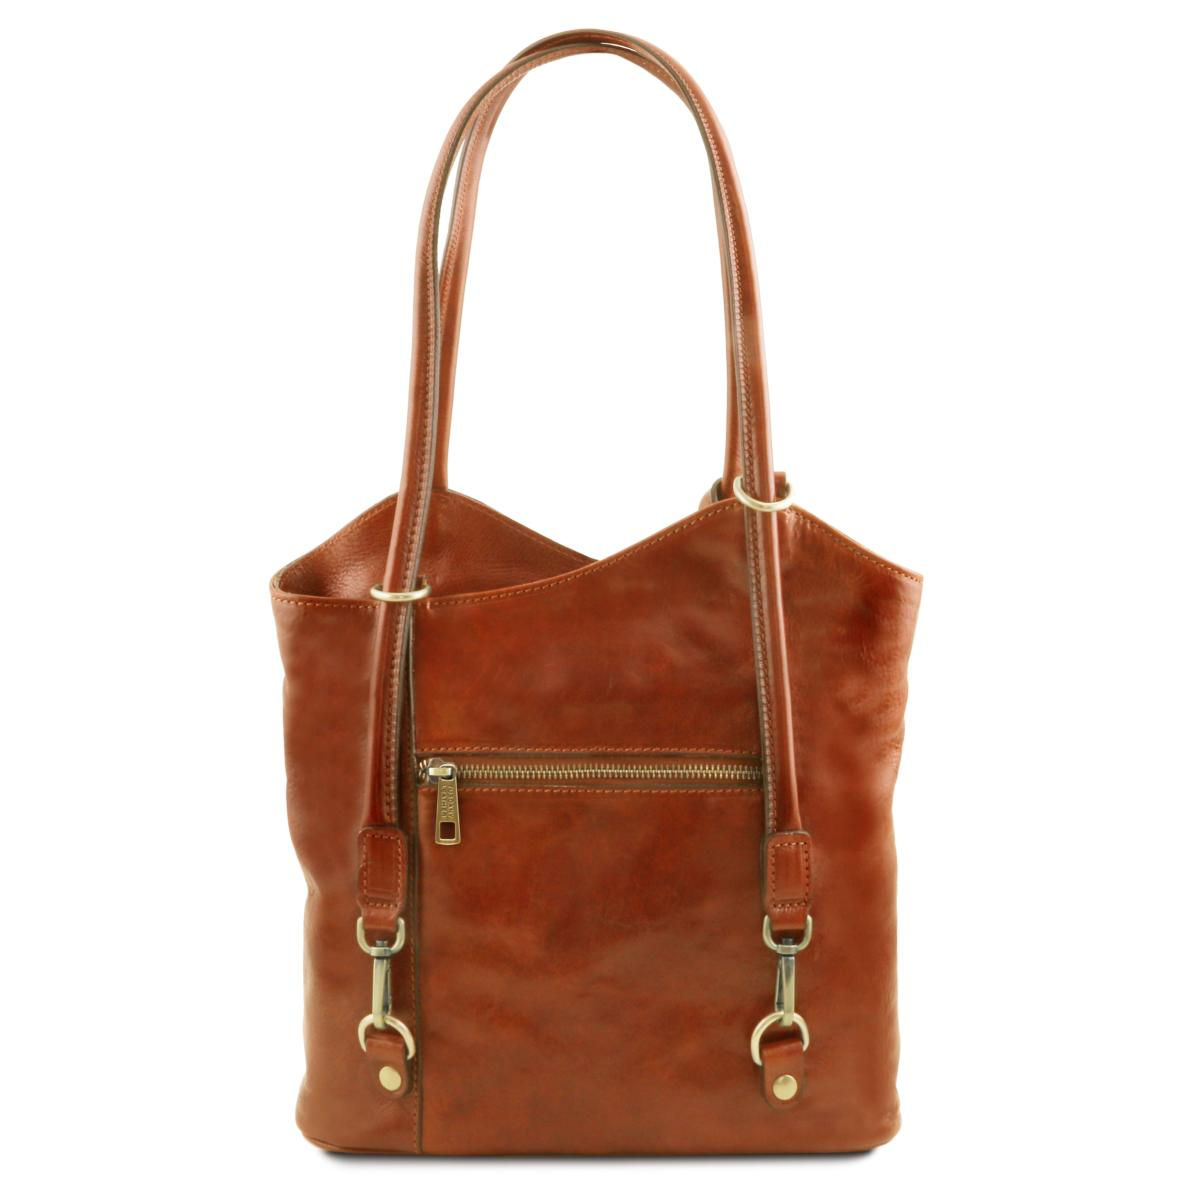 Cuir Leather Dos Femme Camel Sac Tuscany En À Convertible P0knwO